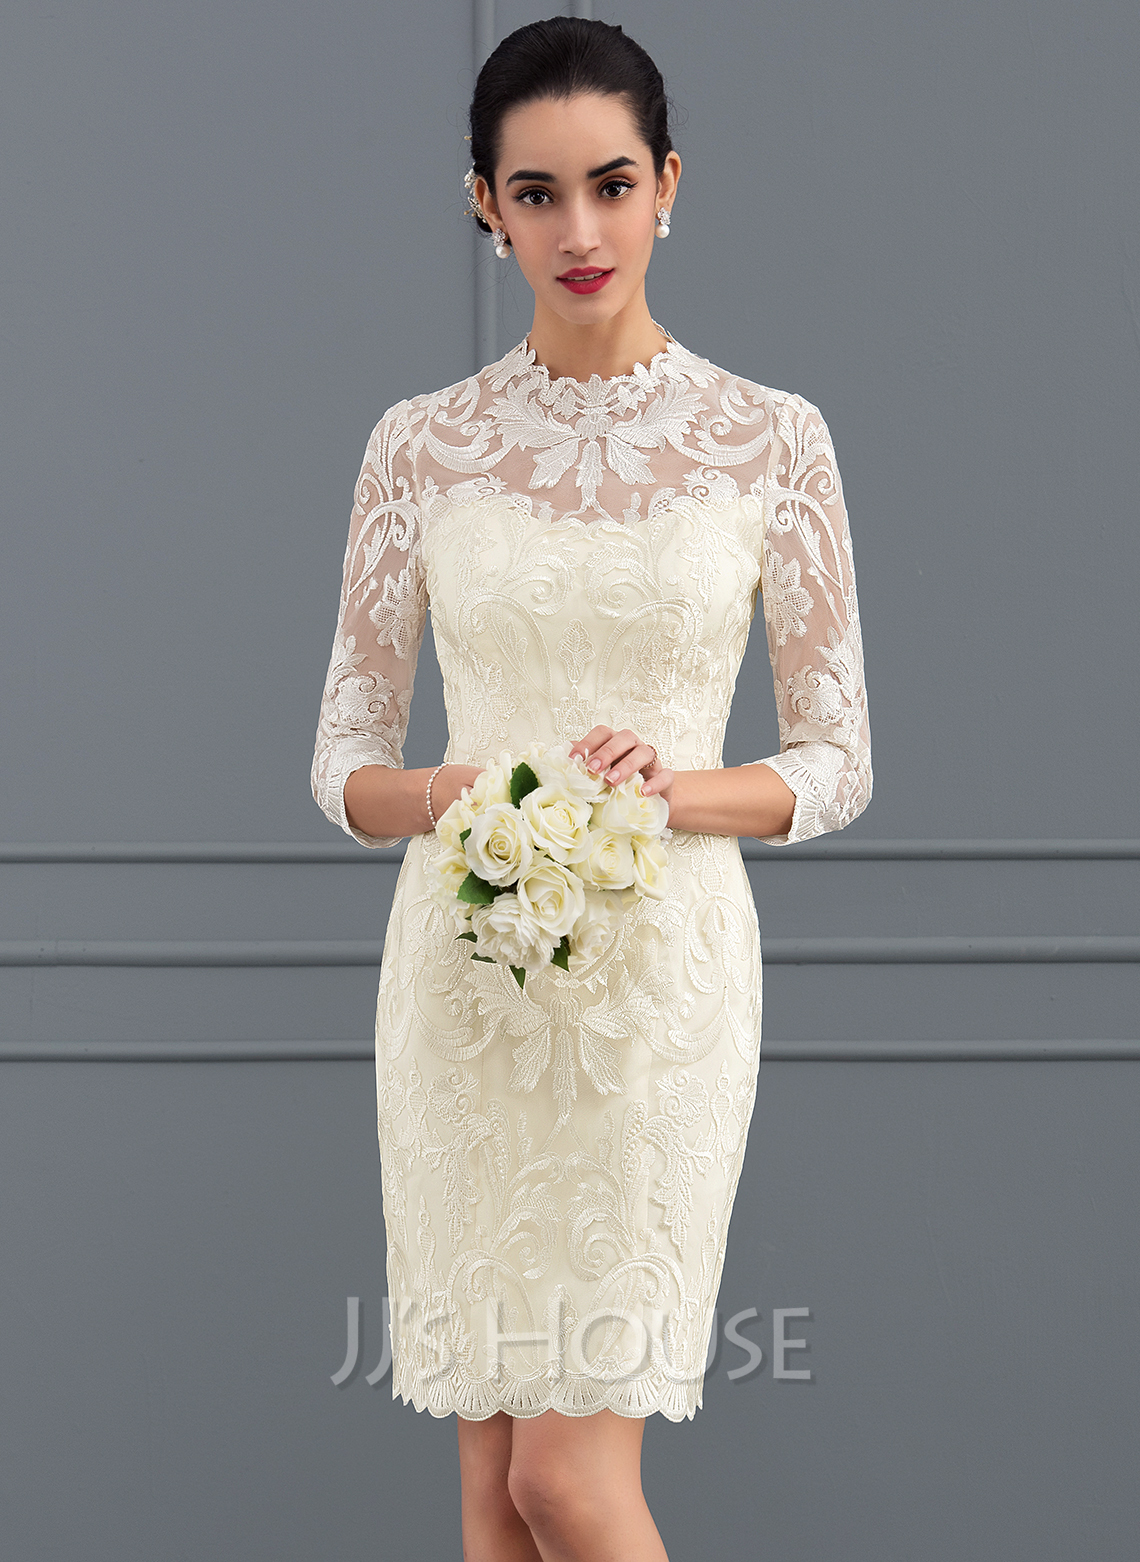 Wedding dresses for rent in orlando fl jjshouse sheathcolumn scoop neck knee length lace wedding dress junglespirit Gallery